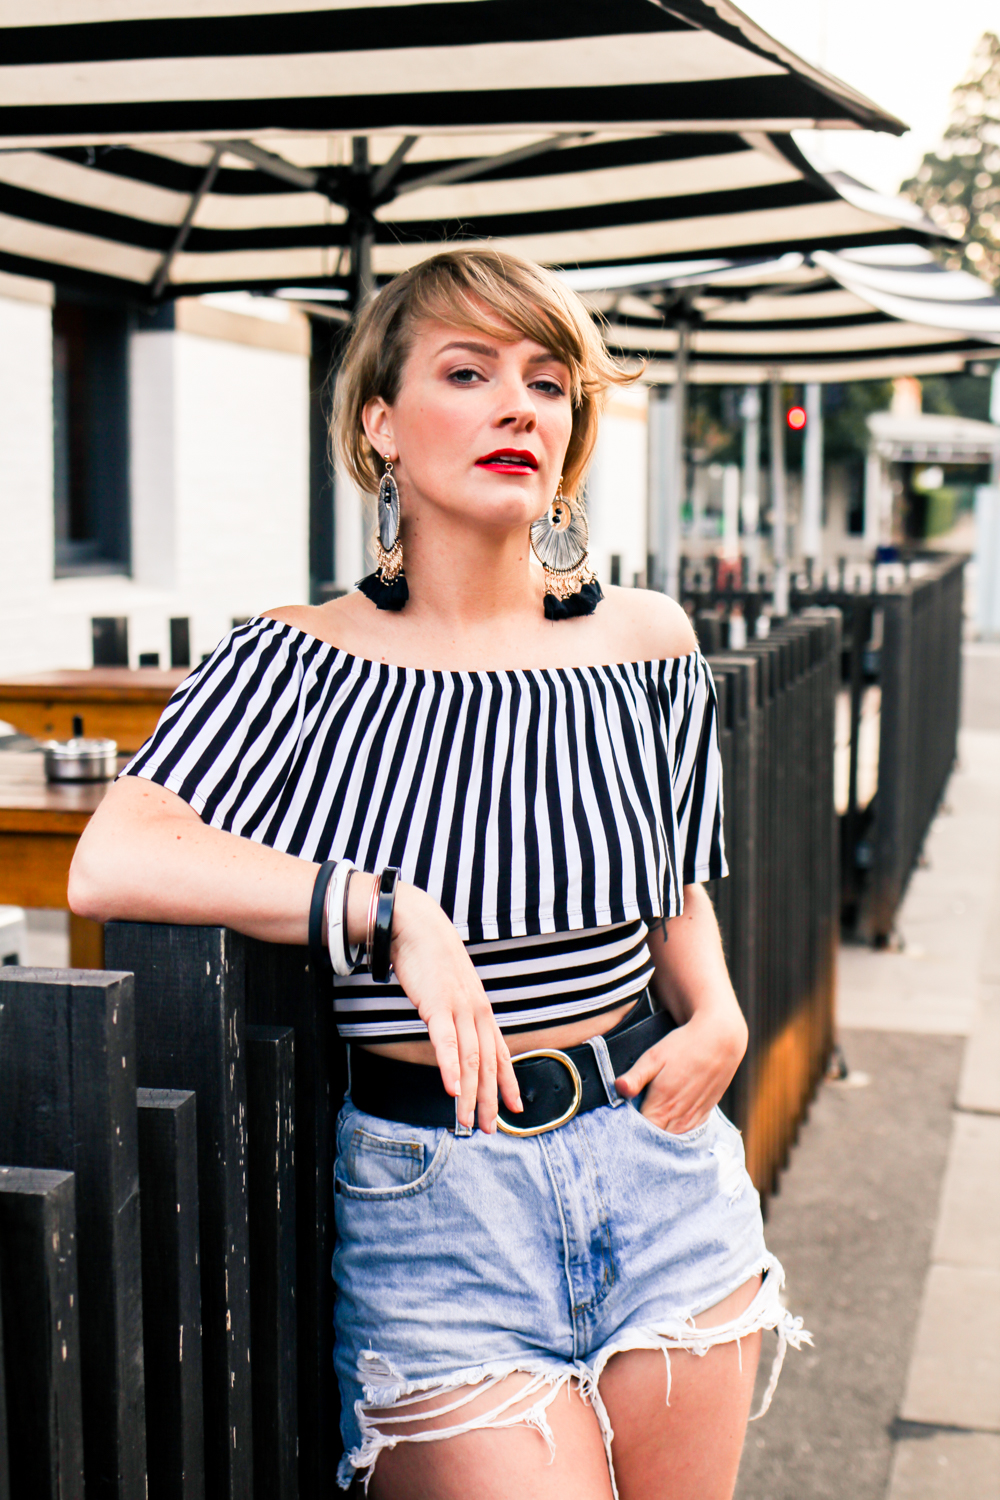 Liana of @findingfemme wears black and white striped top and statement earrings in Ballarat